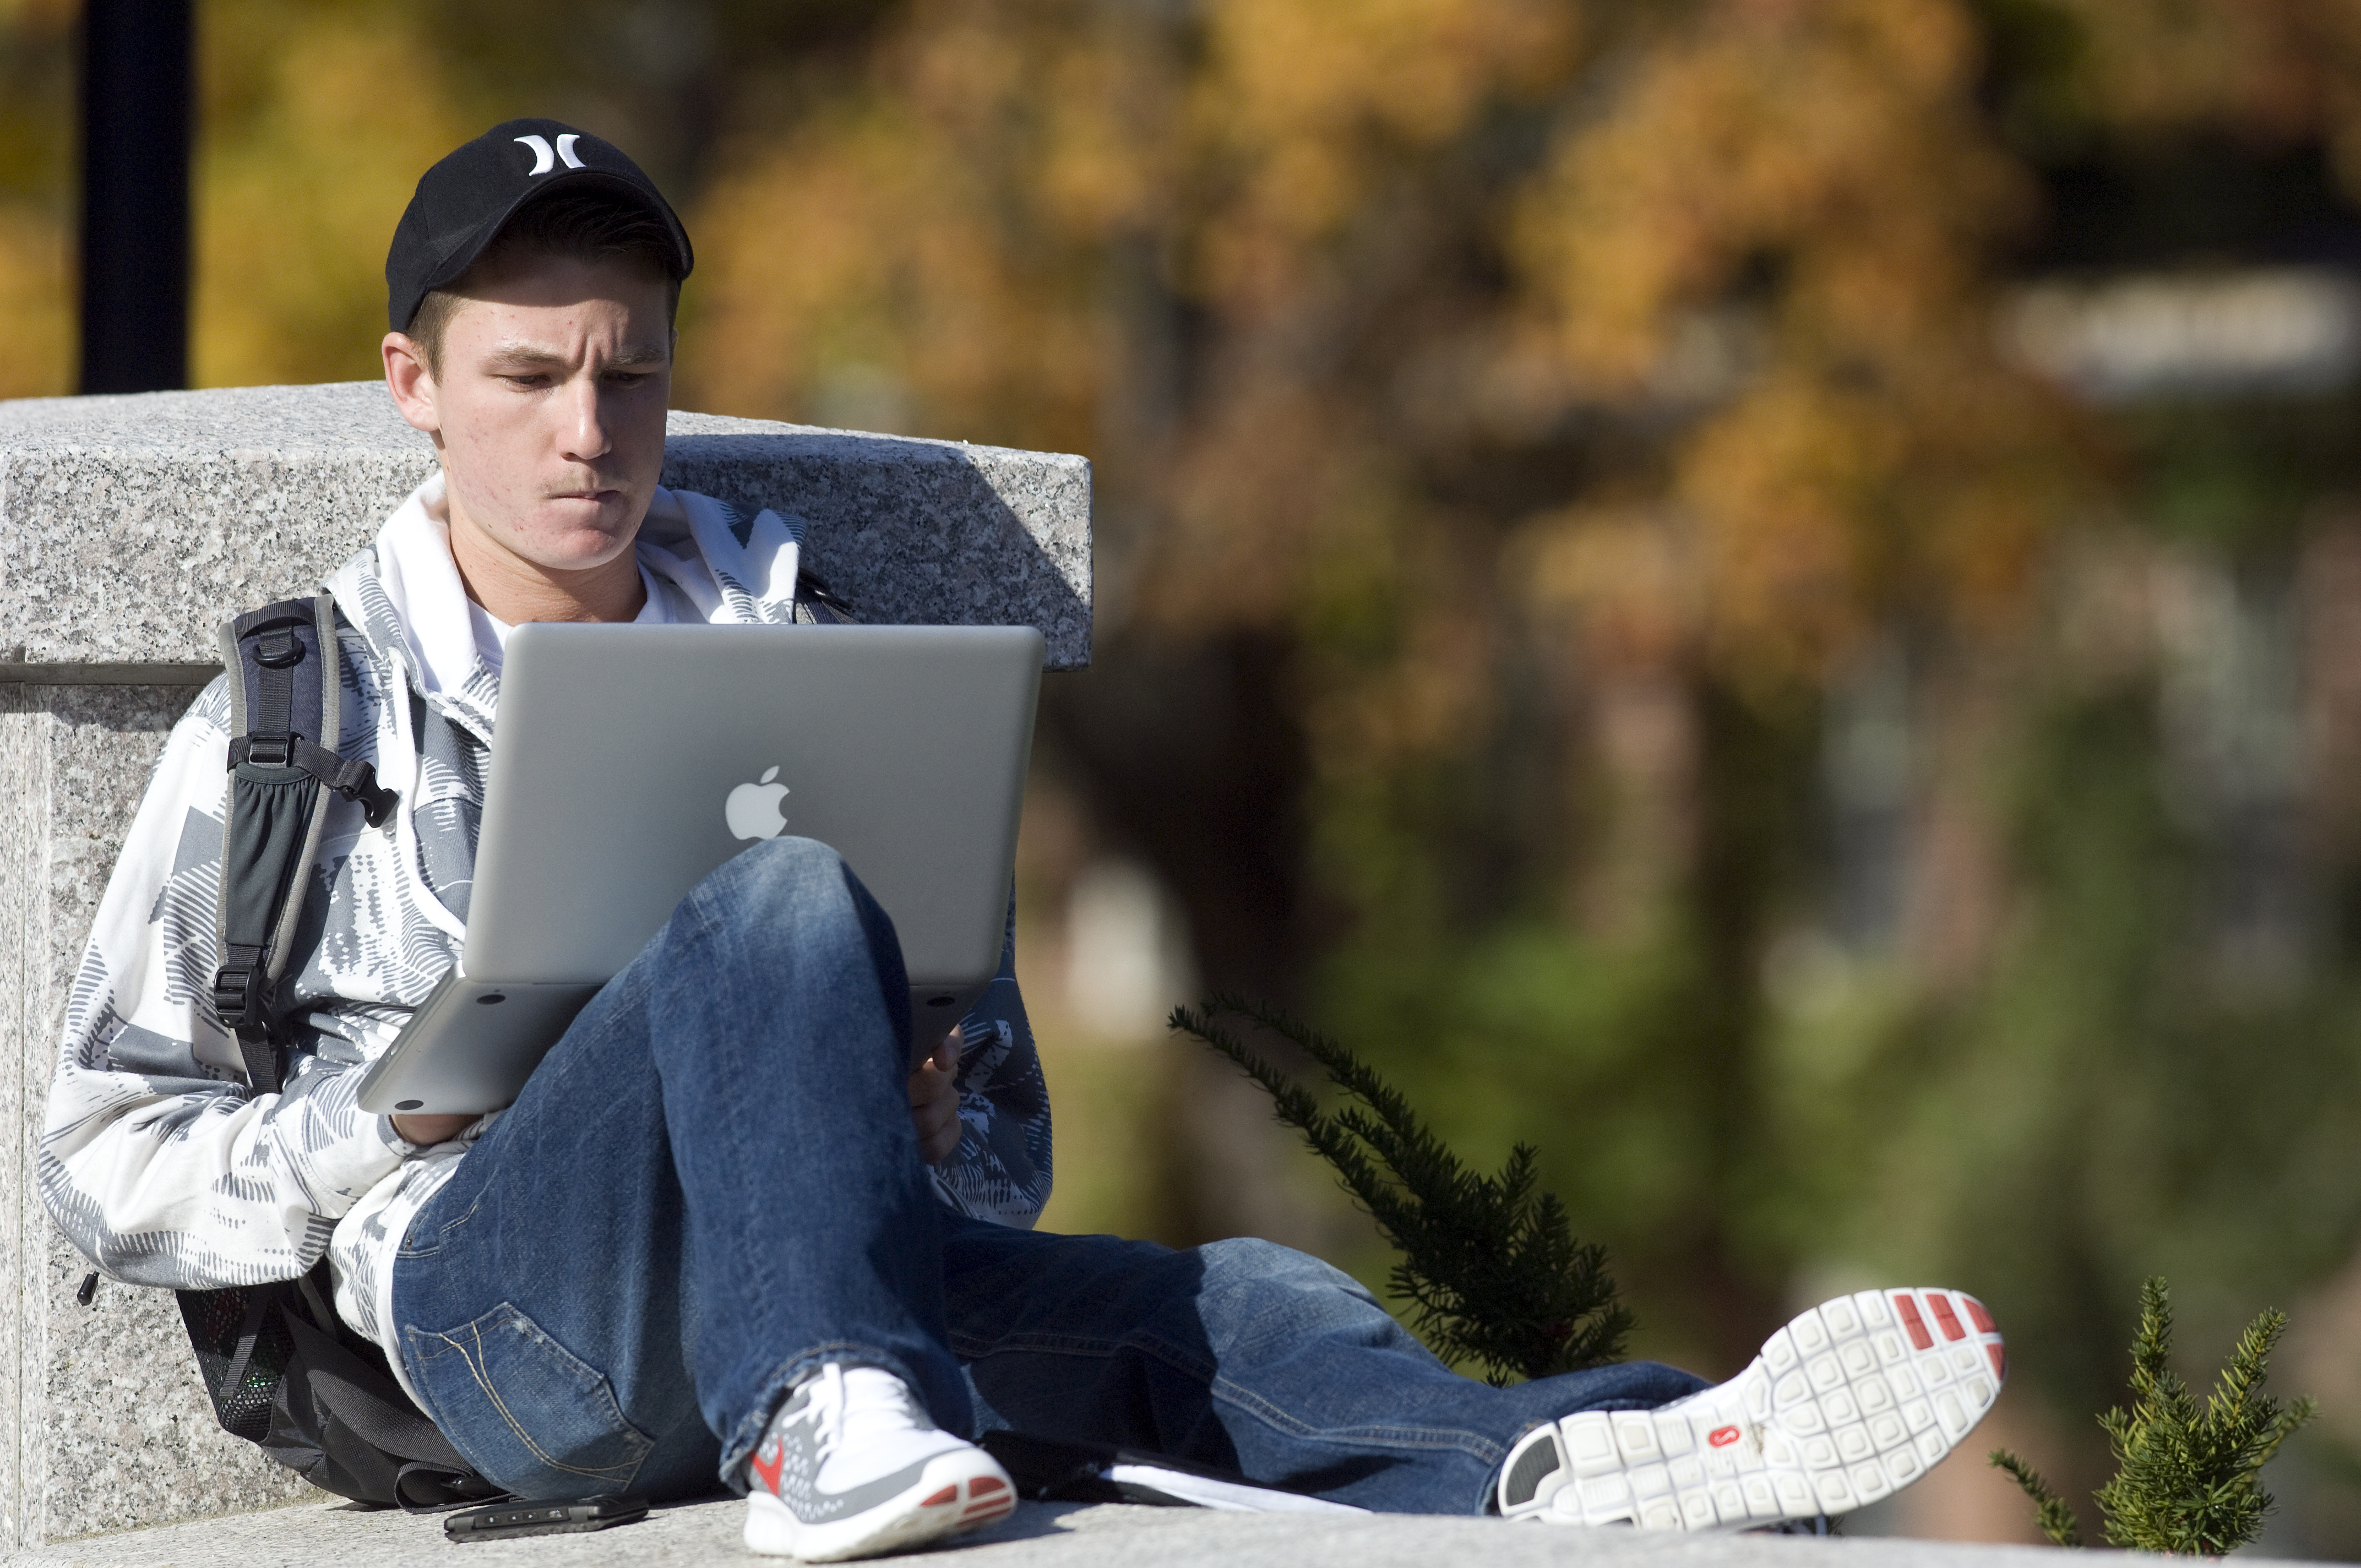 student studying on laptop outside